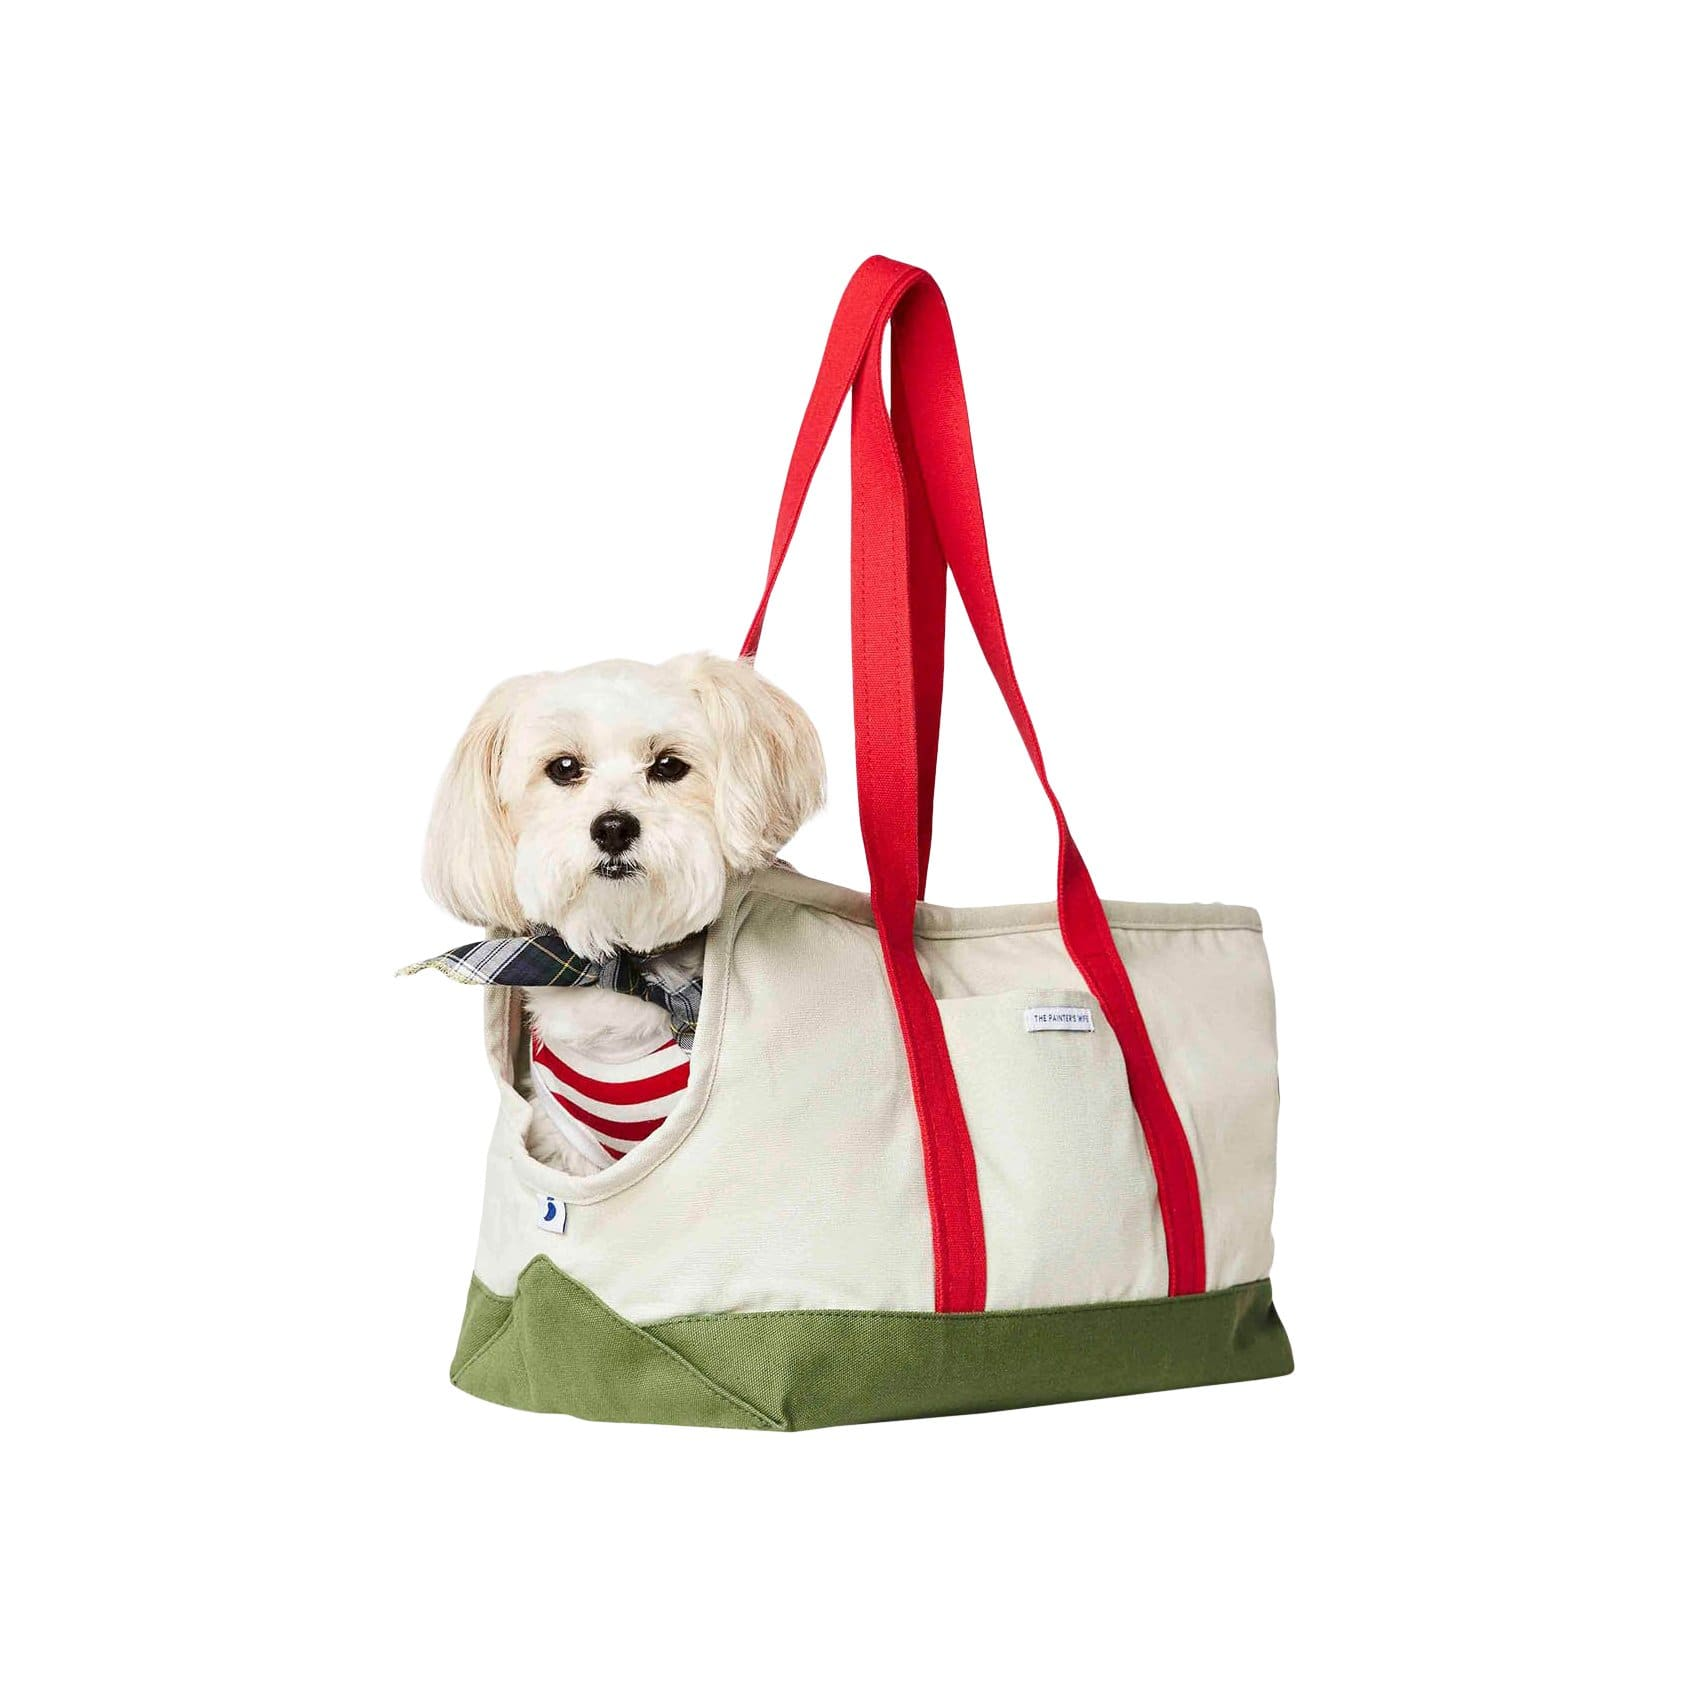 Green + Red Dog Carrier